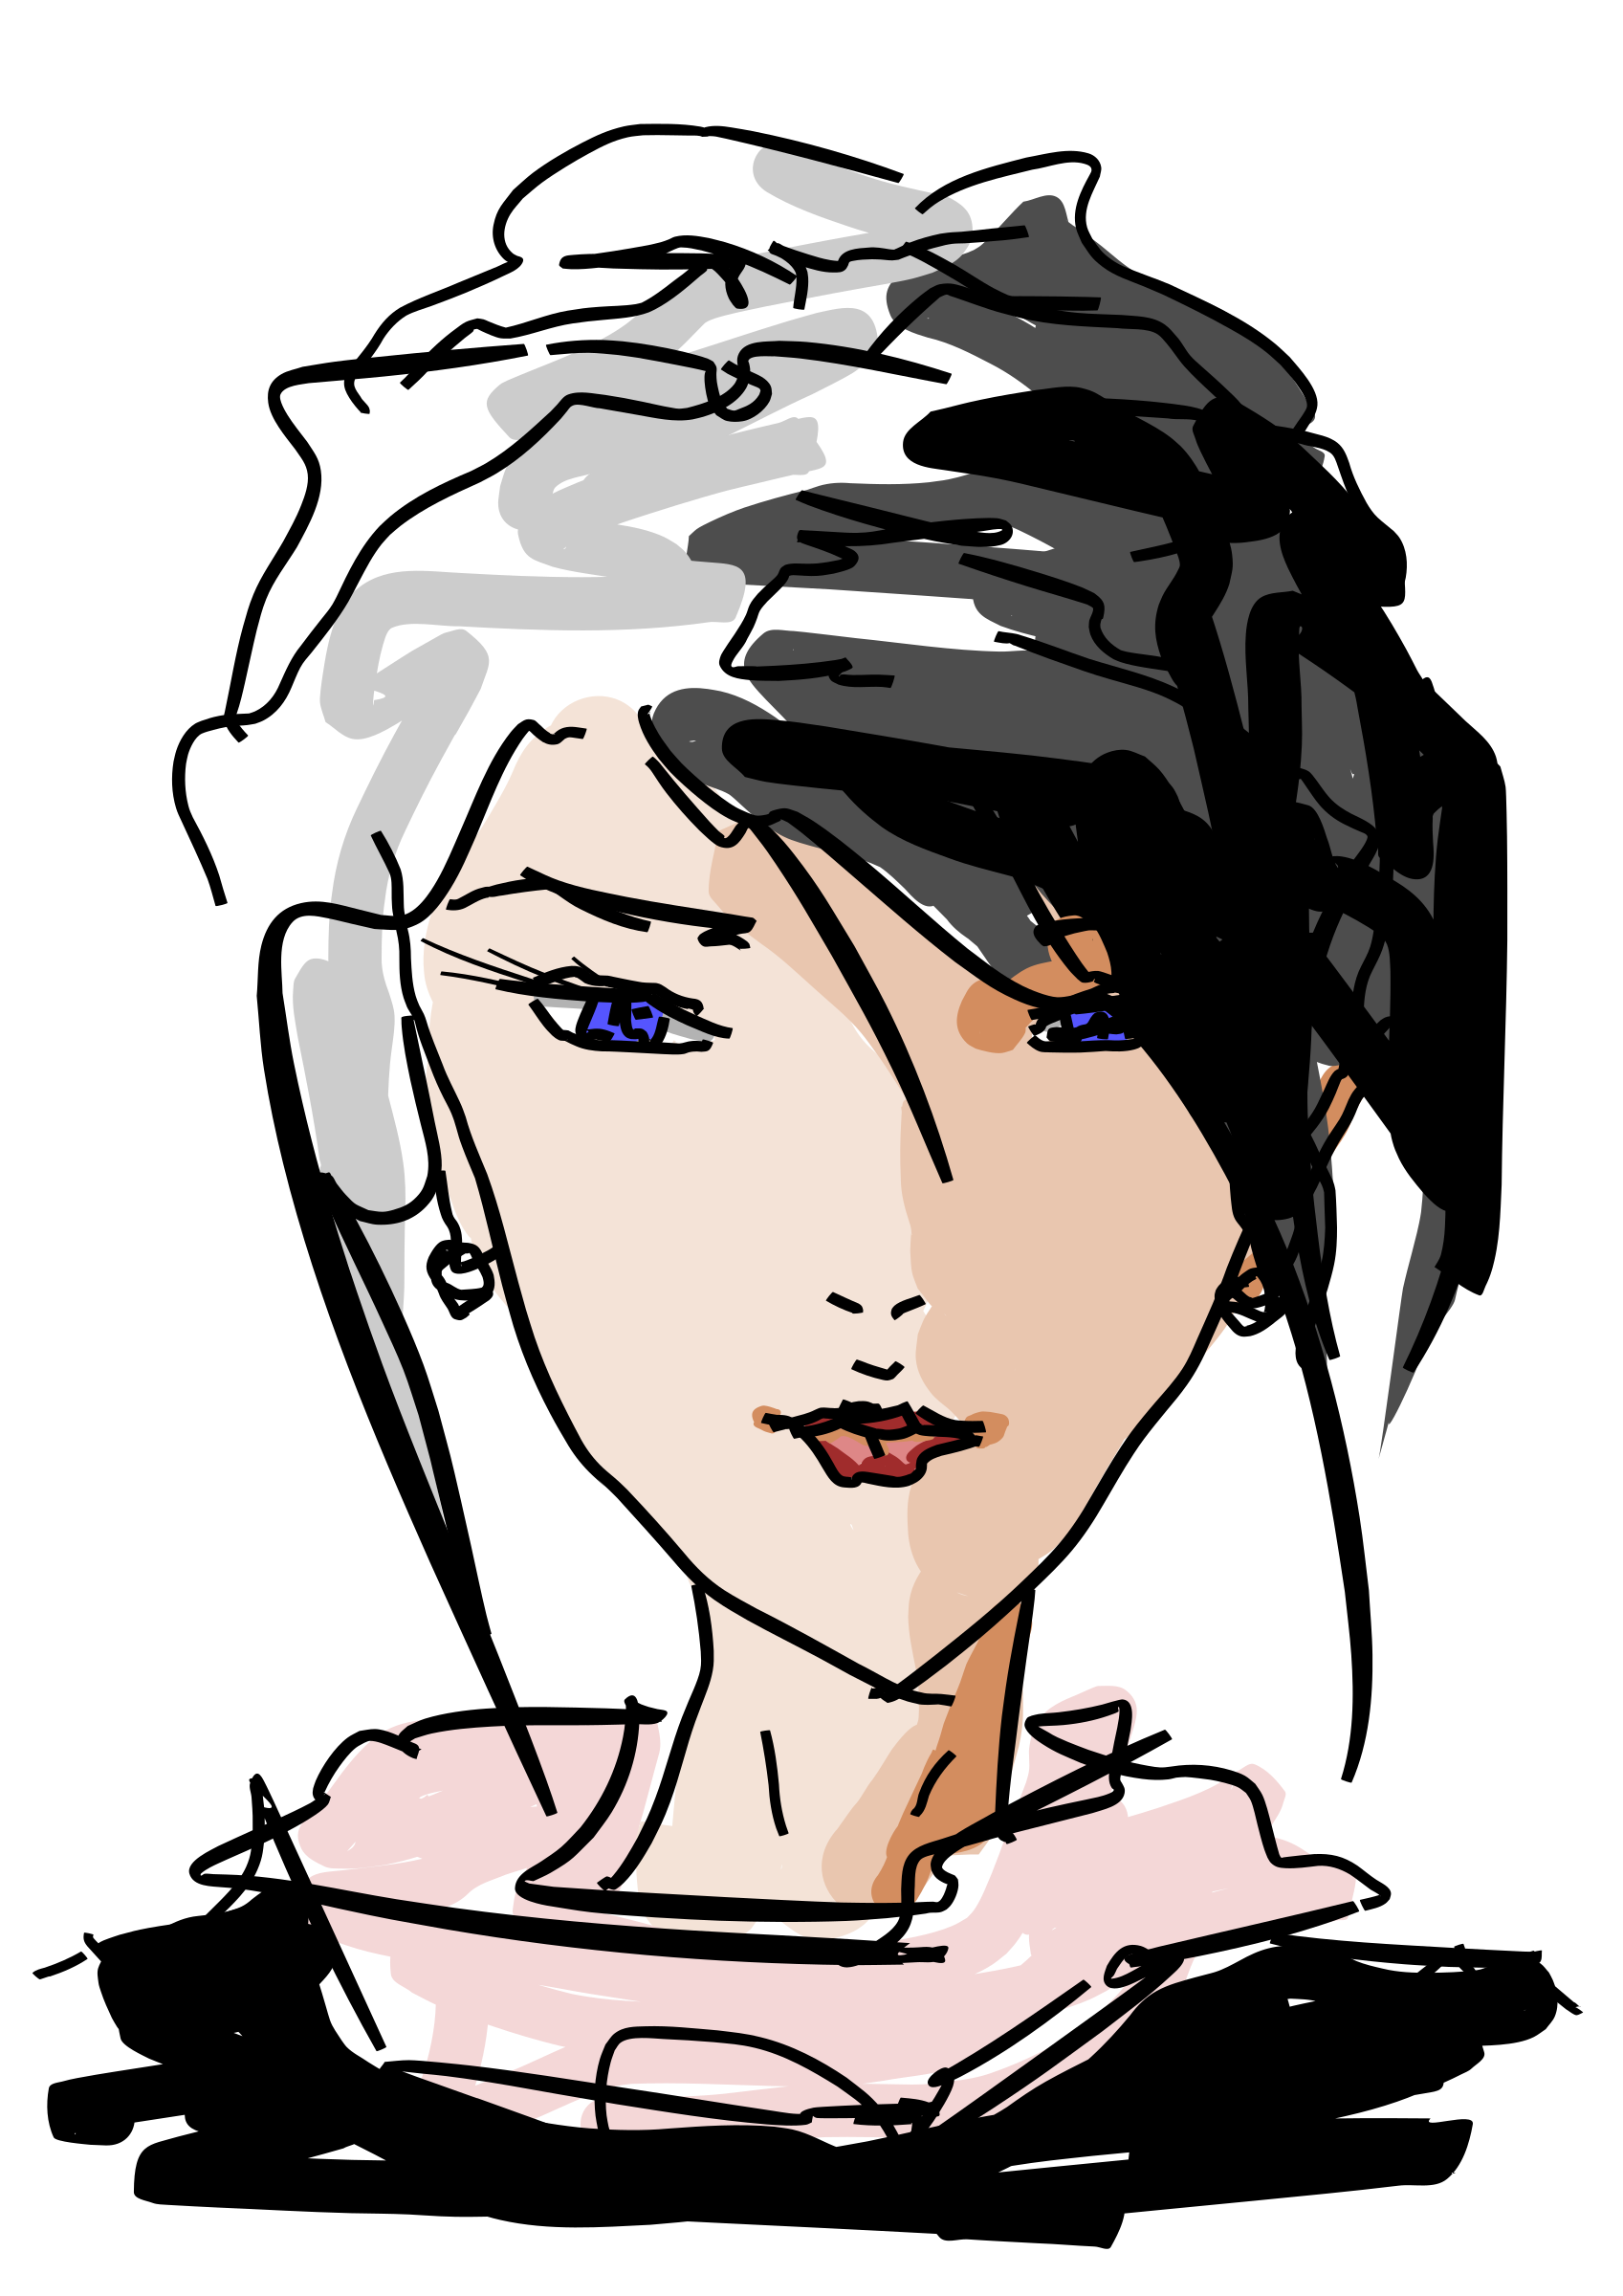 Woman Face Line Drawing Png : Clipart drawn woman s face